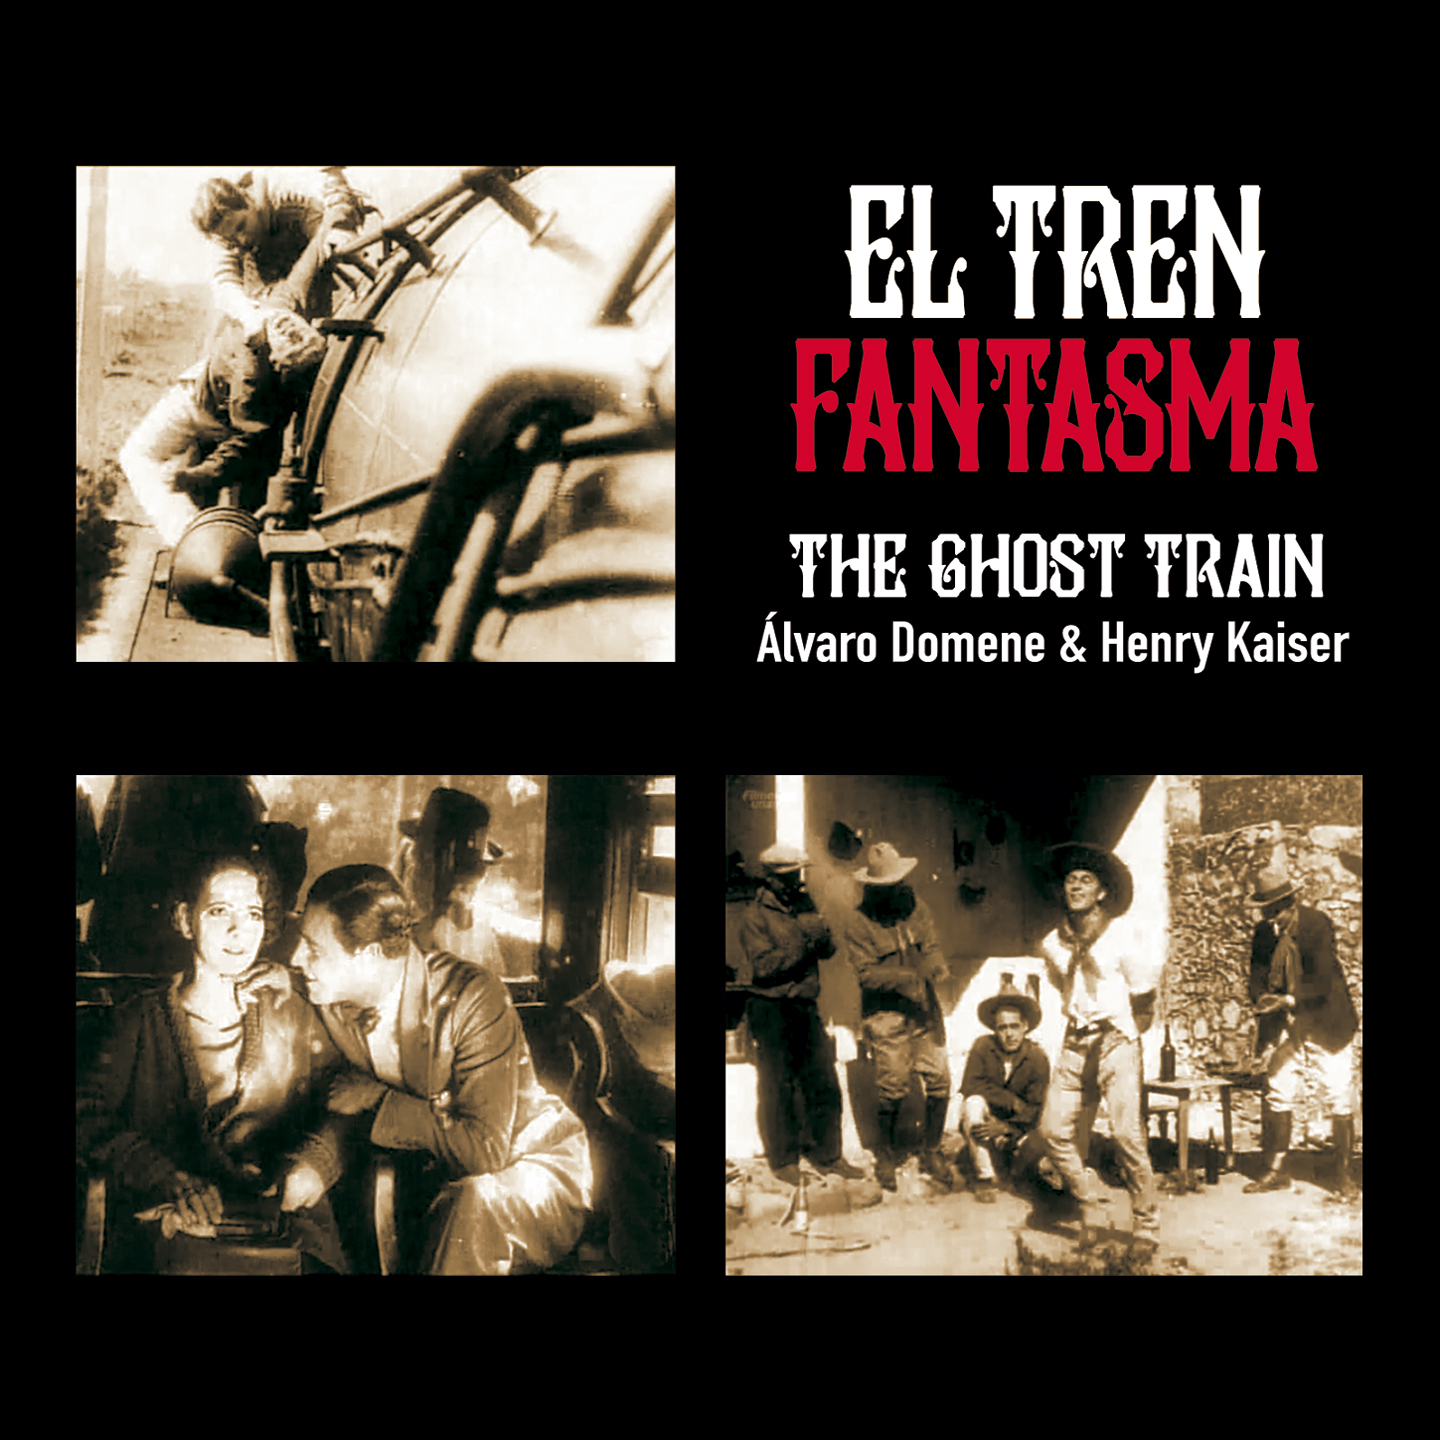 El Tren Fantasma / The Ghost Train by Álvaro Domene & Henry Kaiser